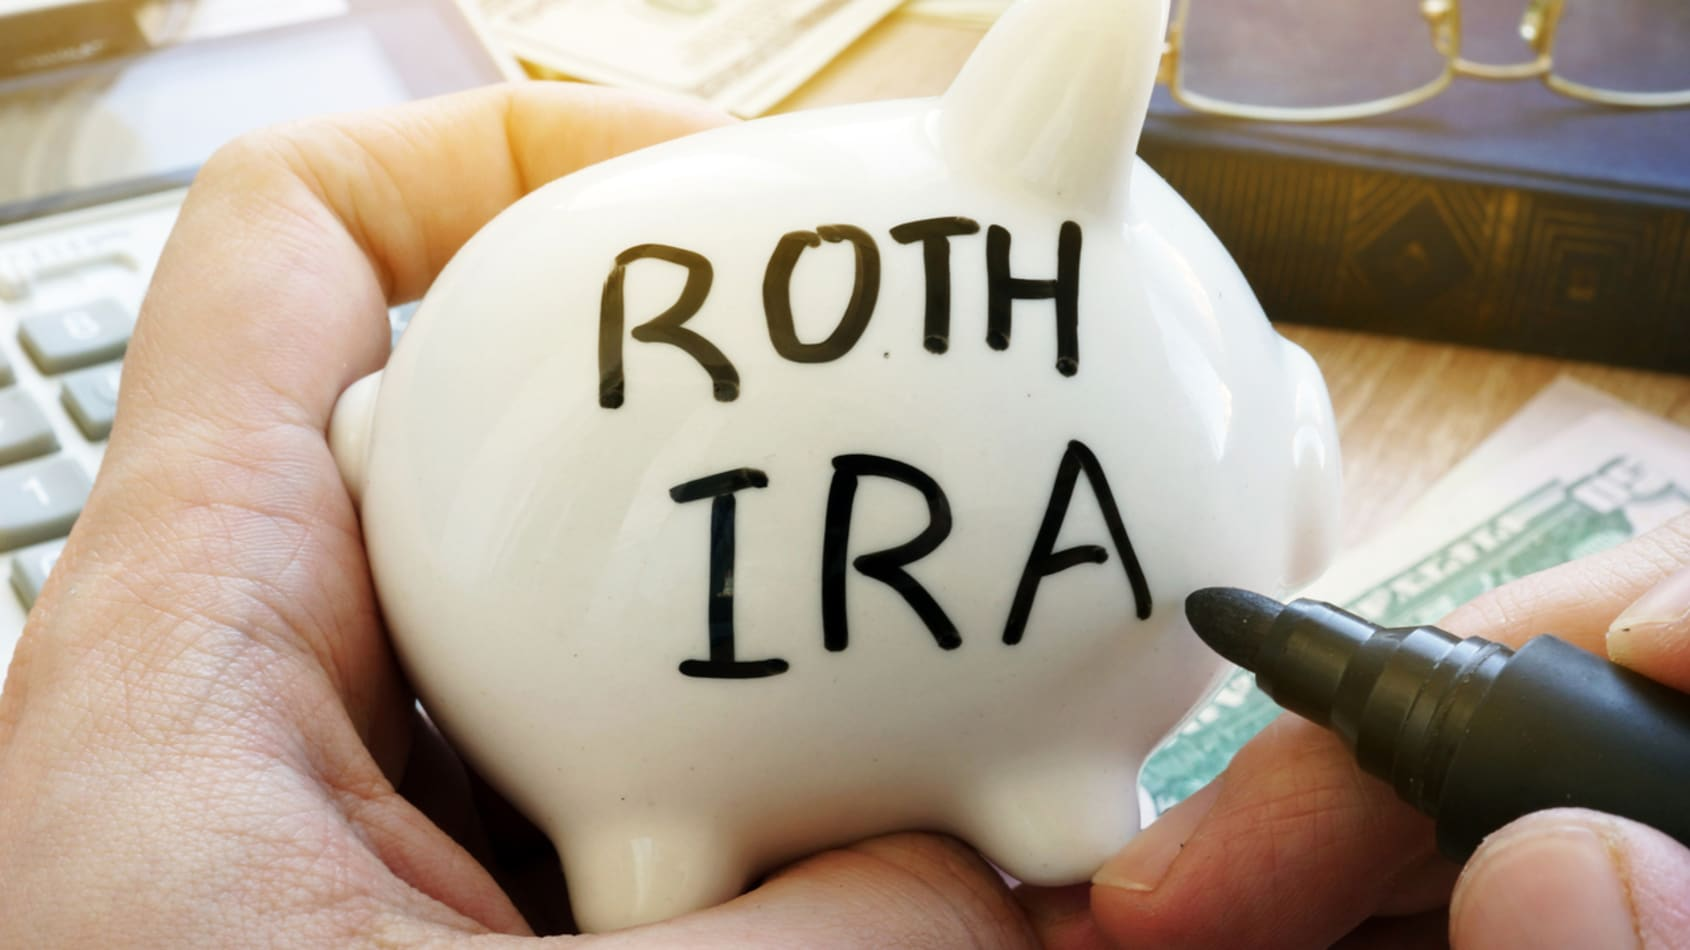 a person holding a small white piggy bank, writing Roth IRA in black Sharpie.